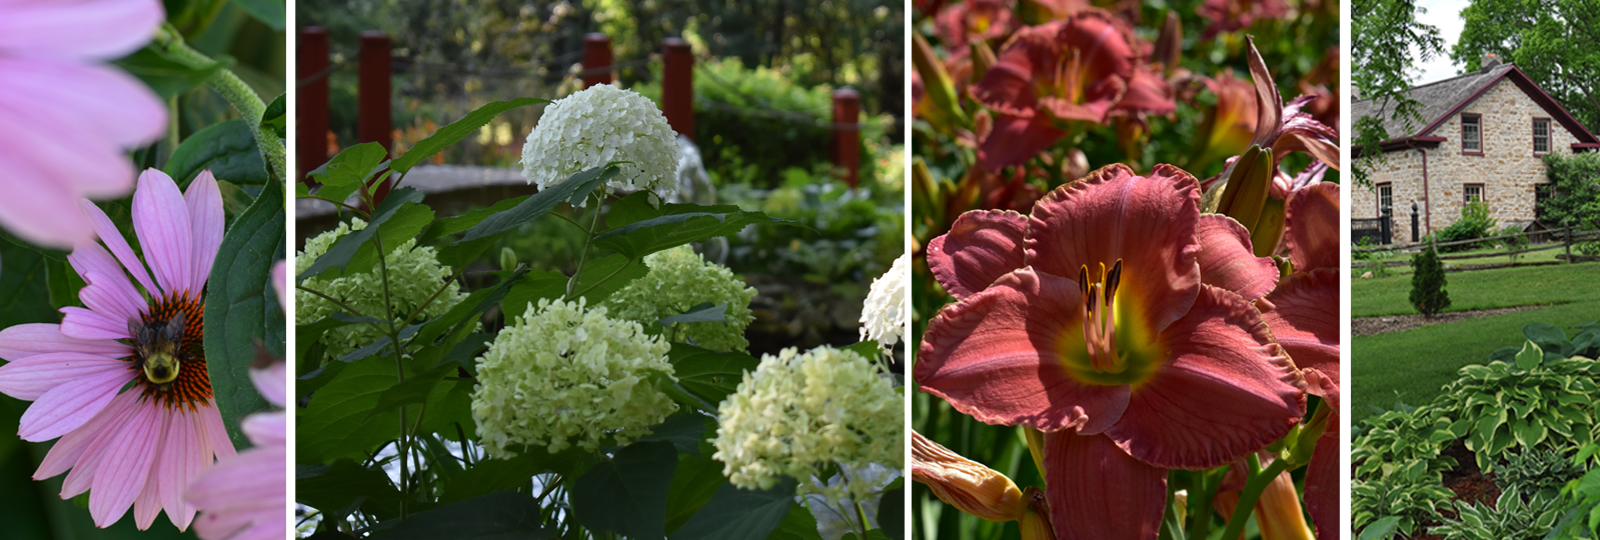 Collage of flowers in various gardens